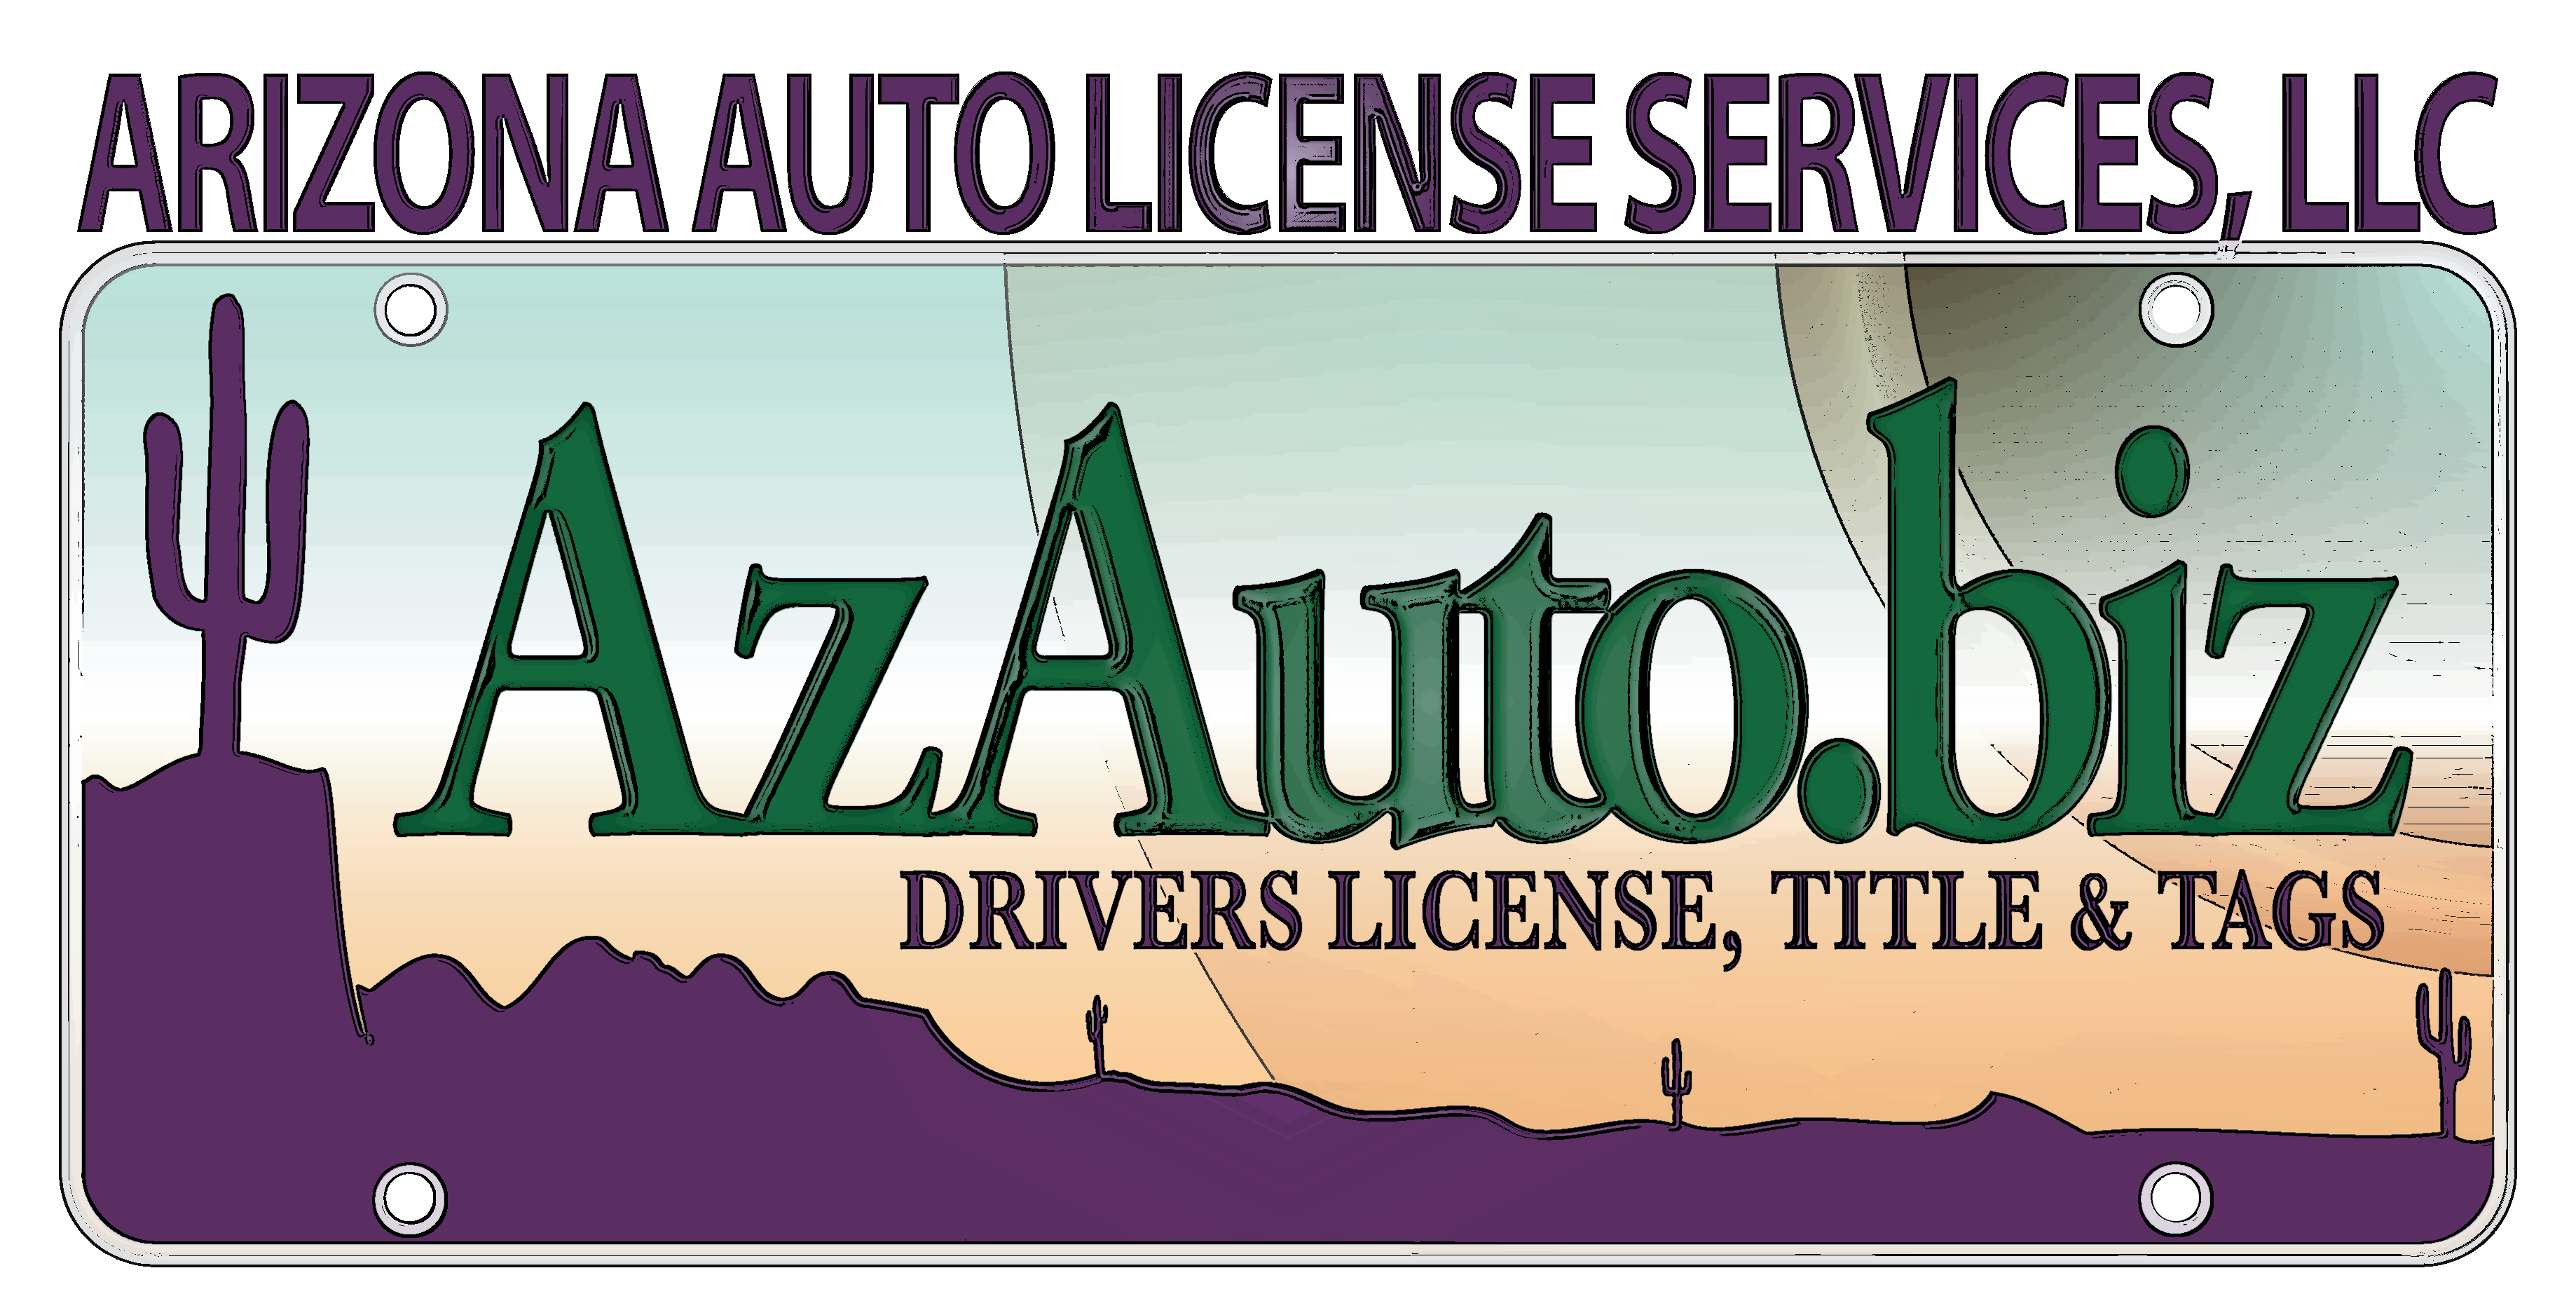 Local Motor Vehicle Services Arizona Auto License Services